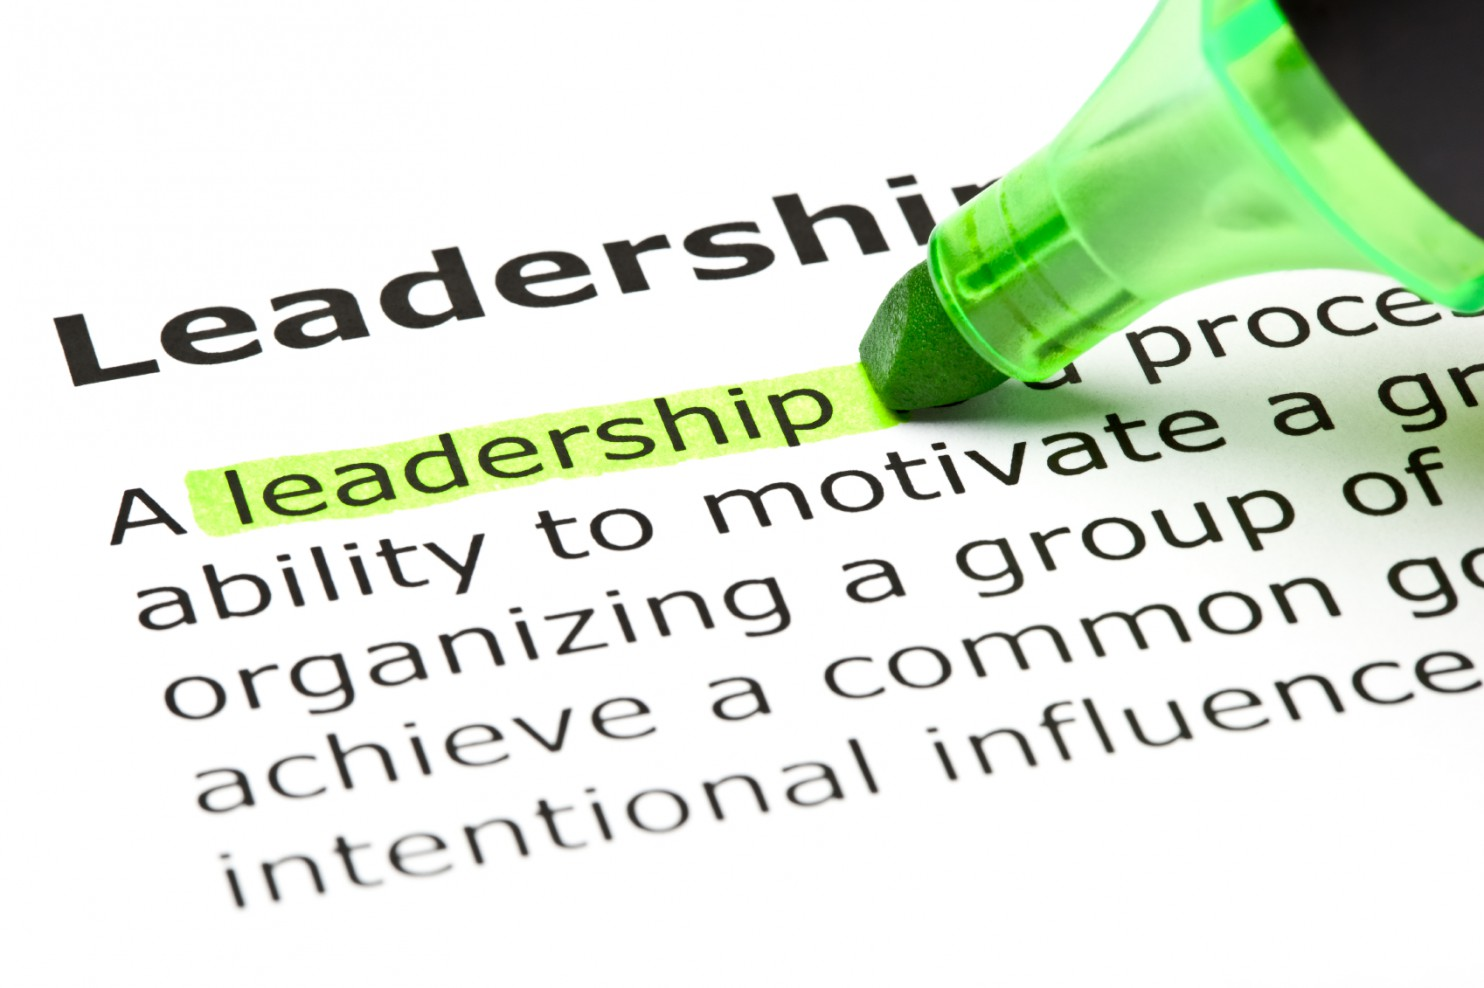 The word 'Leadership' highlighted in green with felt tip pen